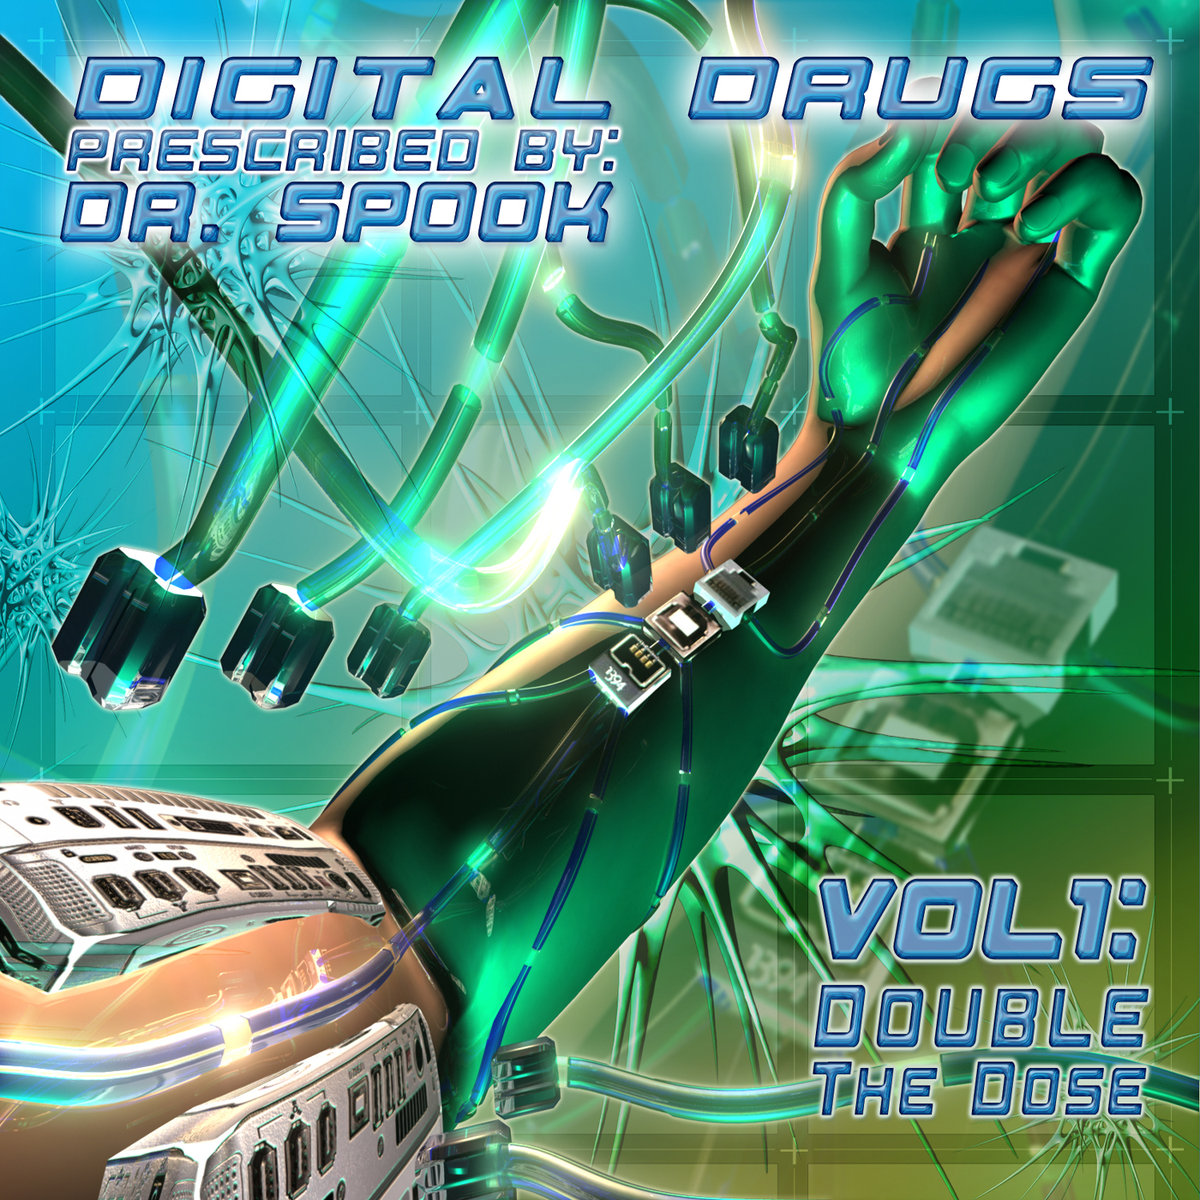 Primordial Ooze - Taking You Away @ 'Various Artists - Digital Drugs Vol.1: Double the Dose (Prescribed by Dr. Spook)' album (electronic, goa)